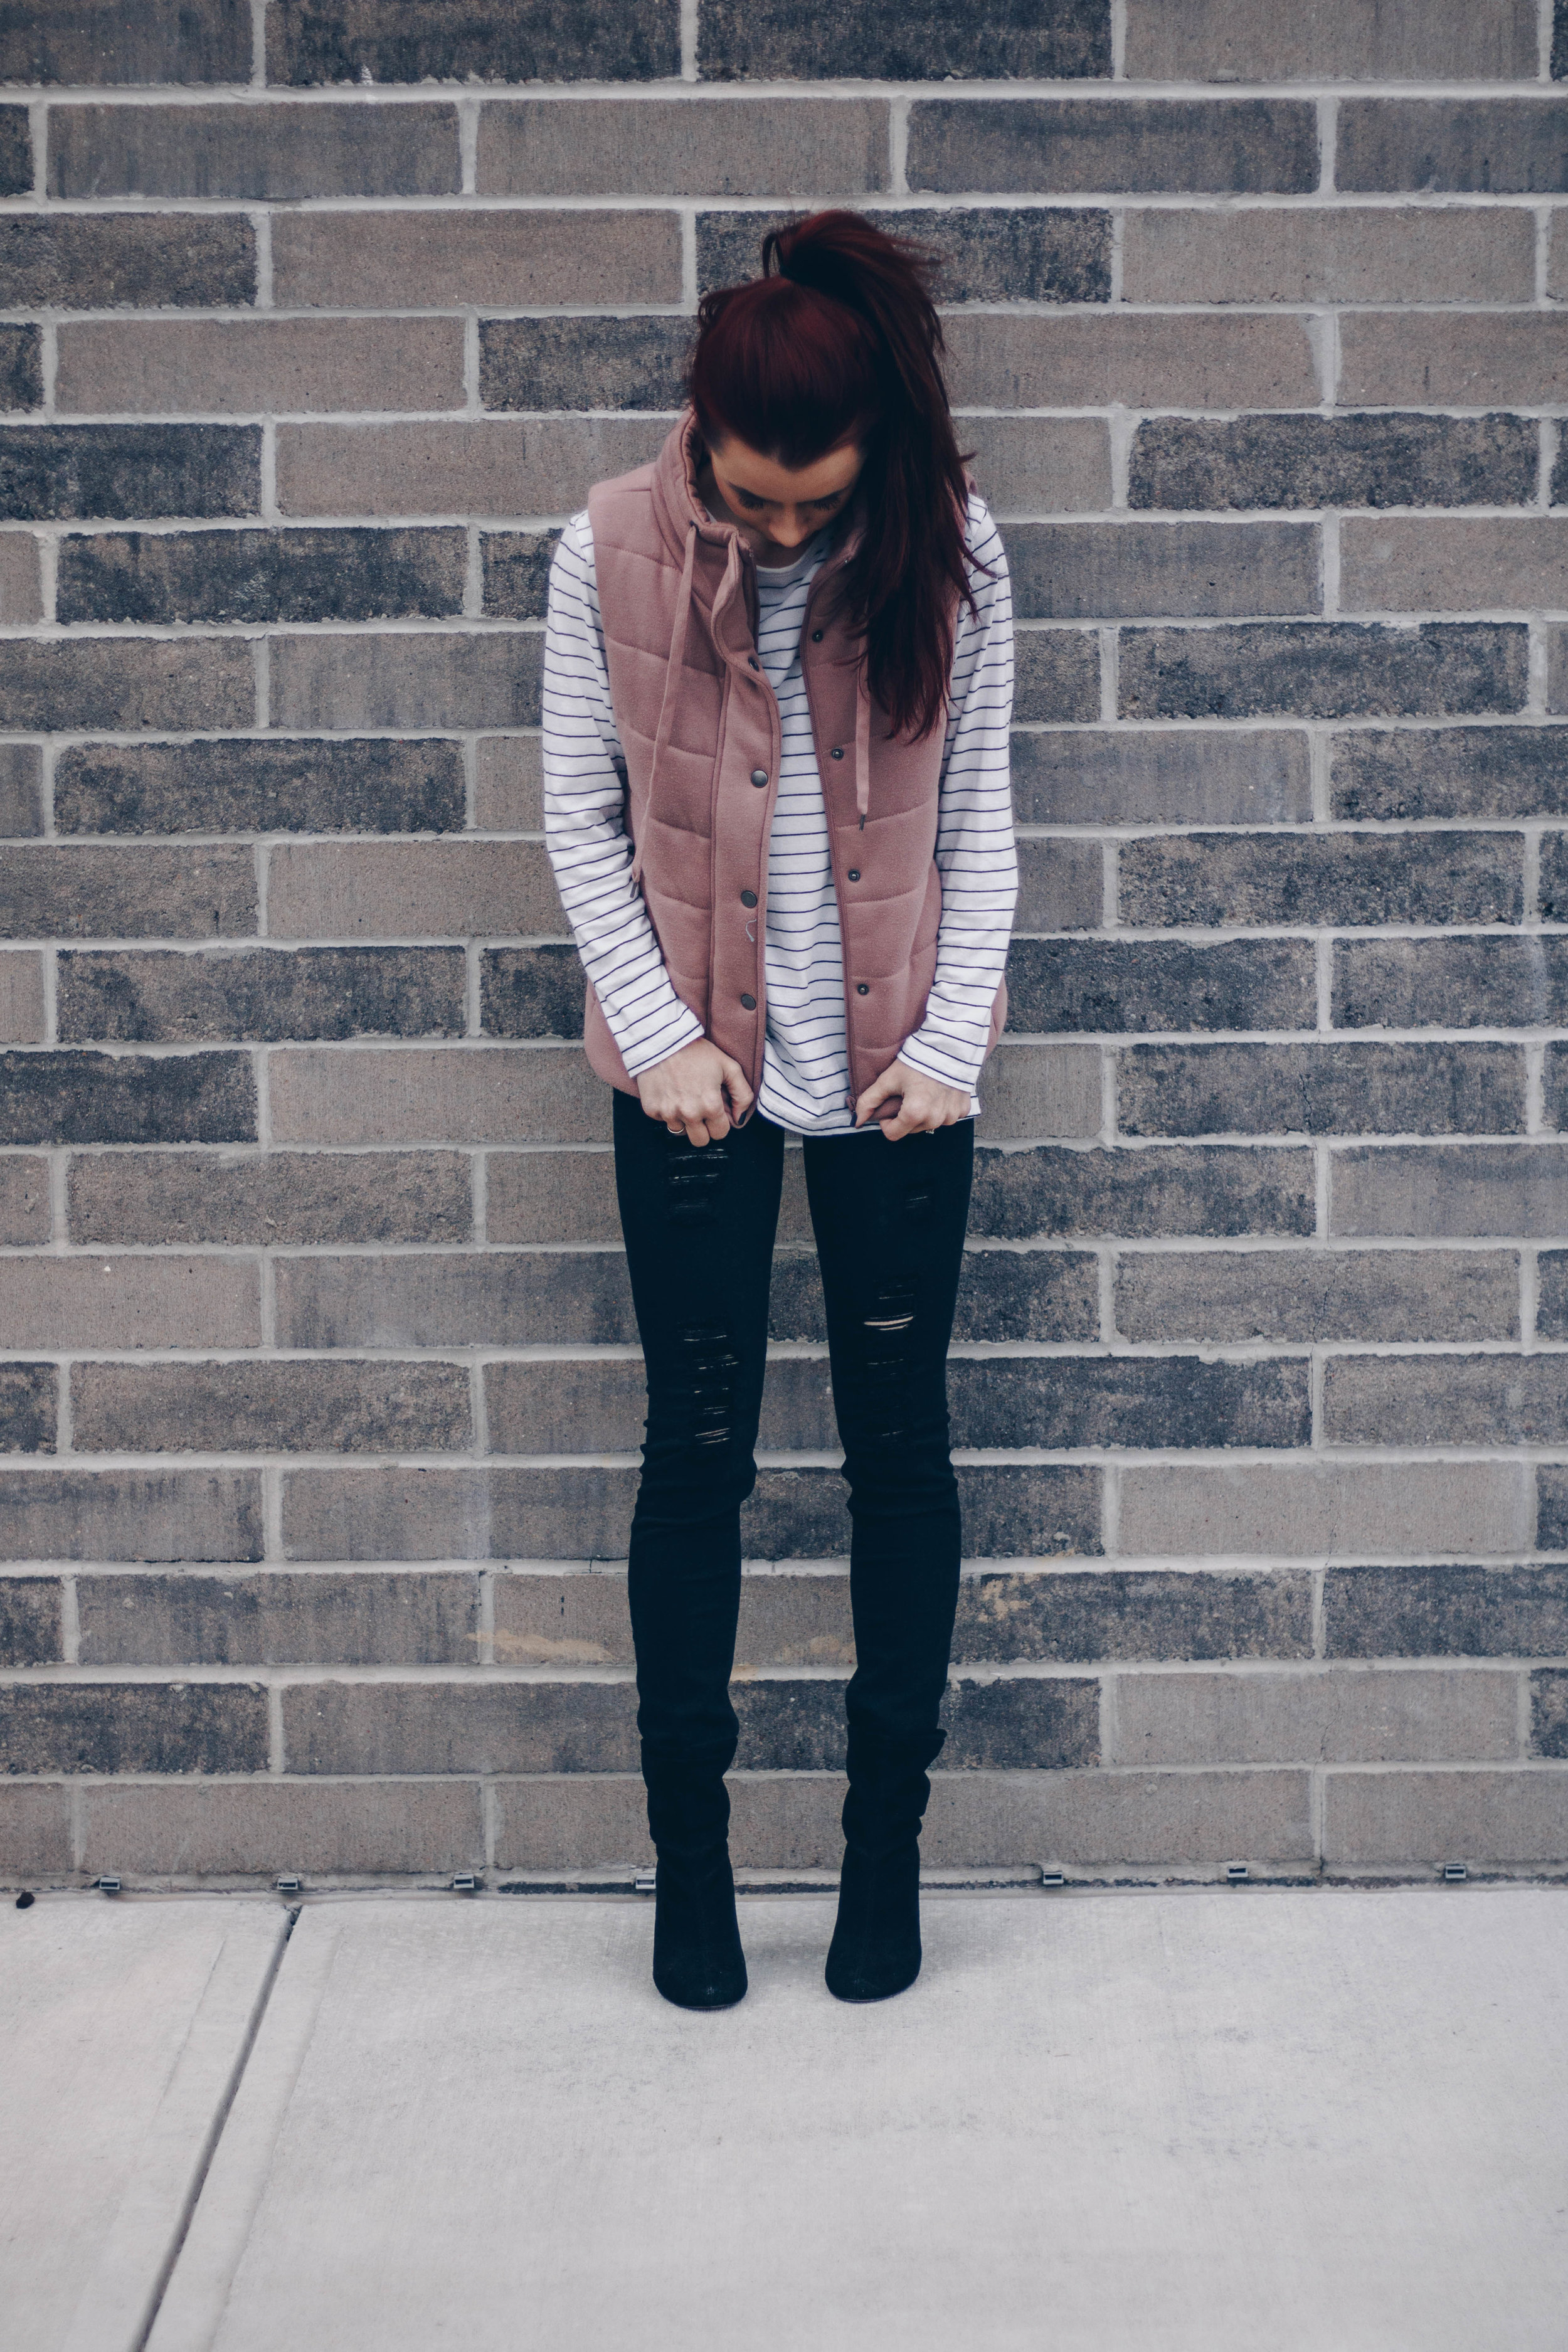 Pink Vest Styled 3 Ways by Indianapolis fashion blogger Trendy in Indy